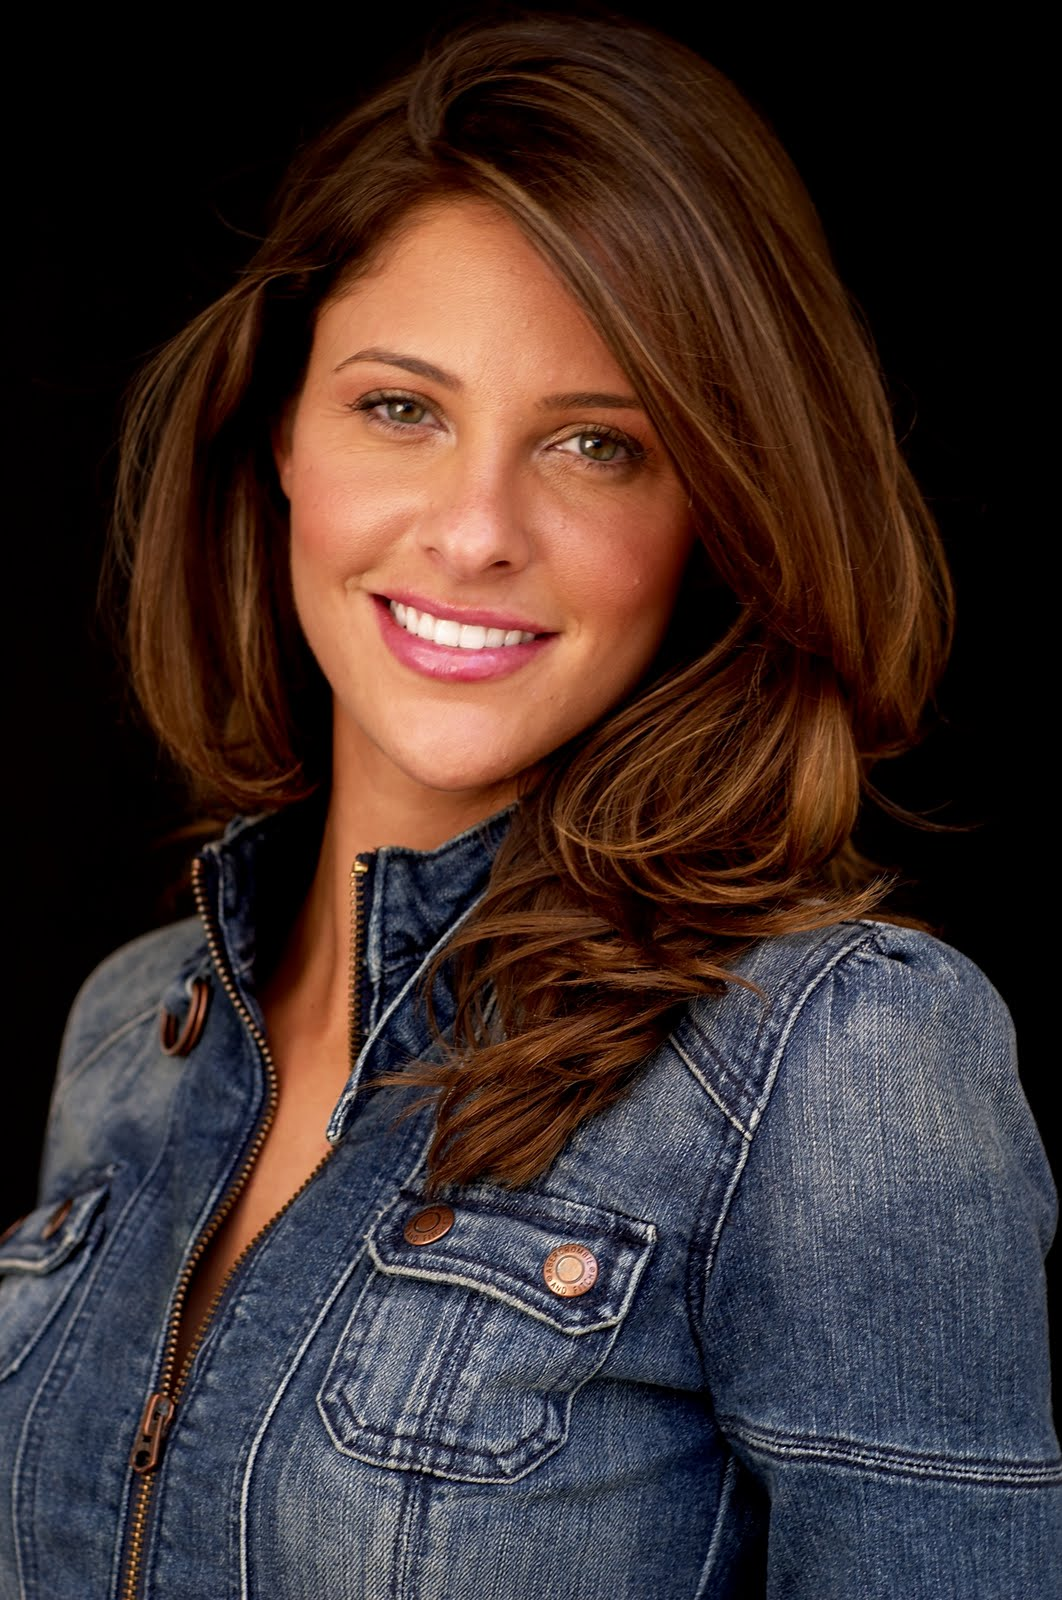 World's Most Beautiful Women: Jill Wagner